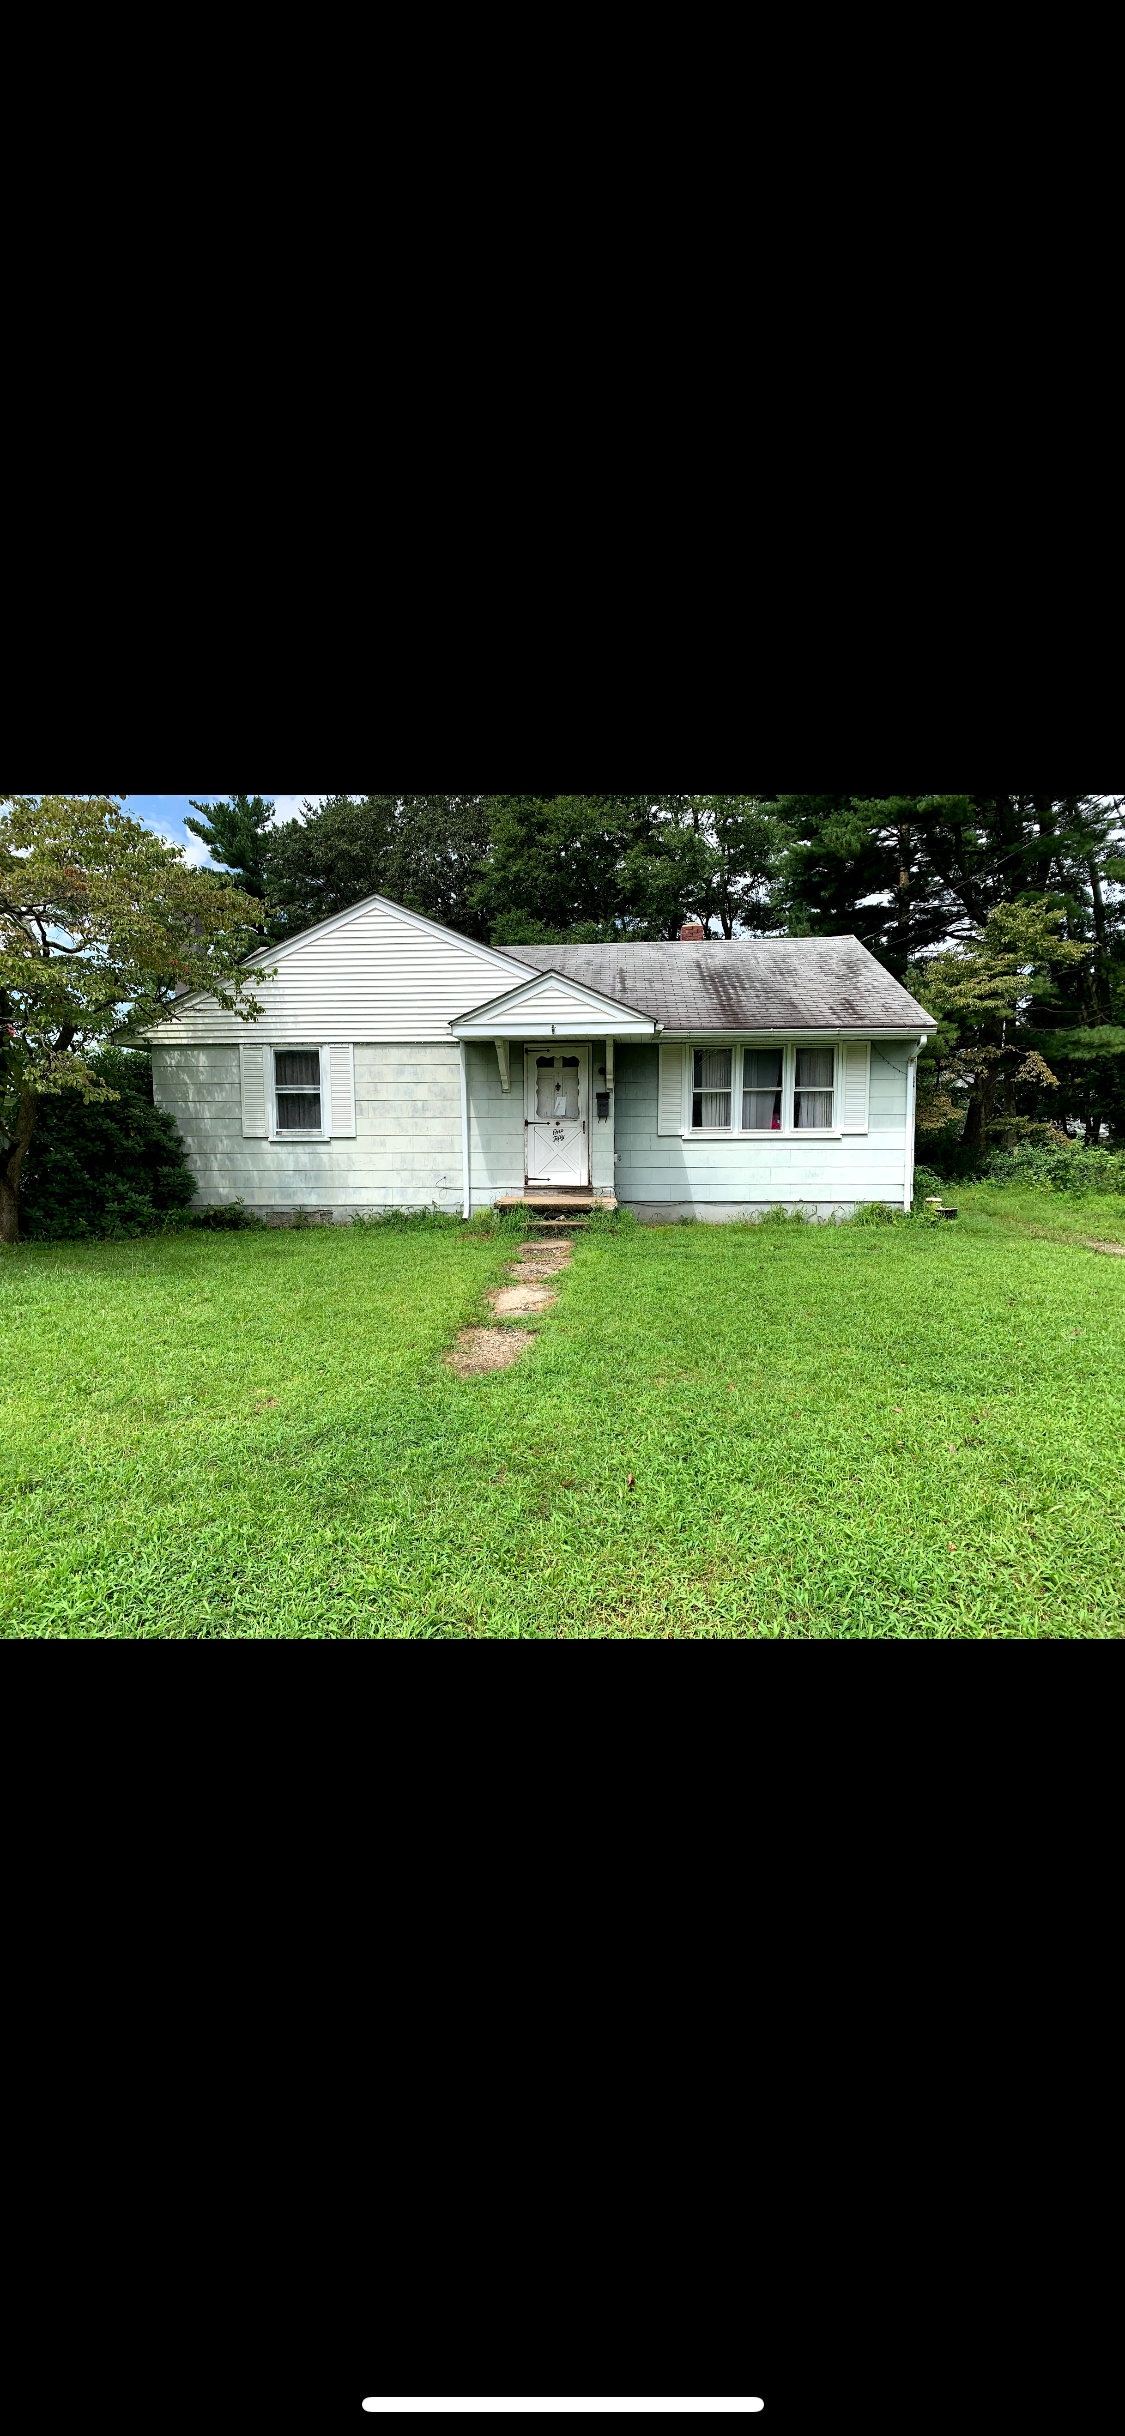 150 E Monmouth Ave, Sewell, NJ